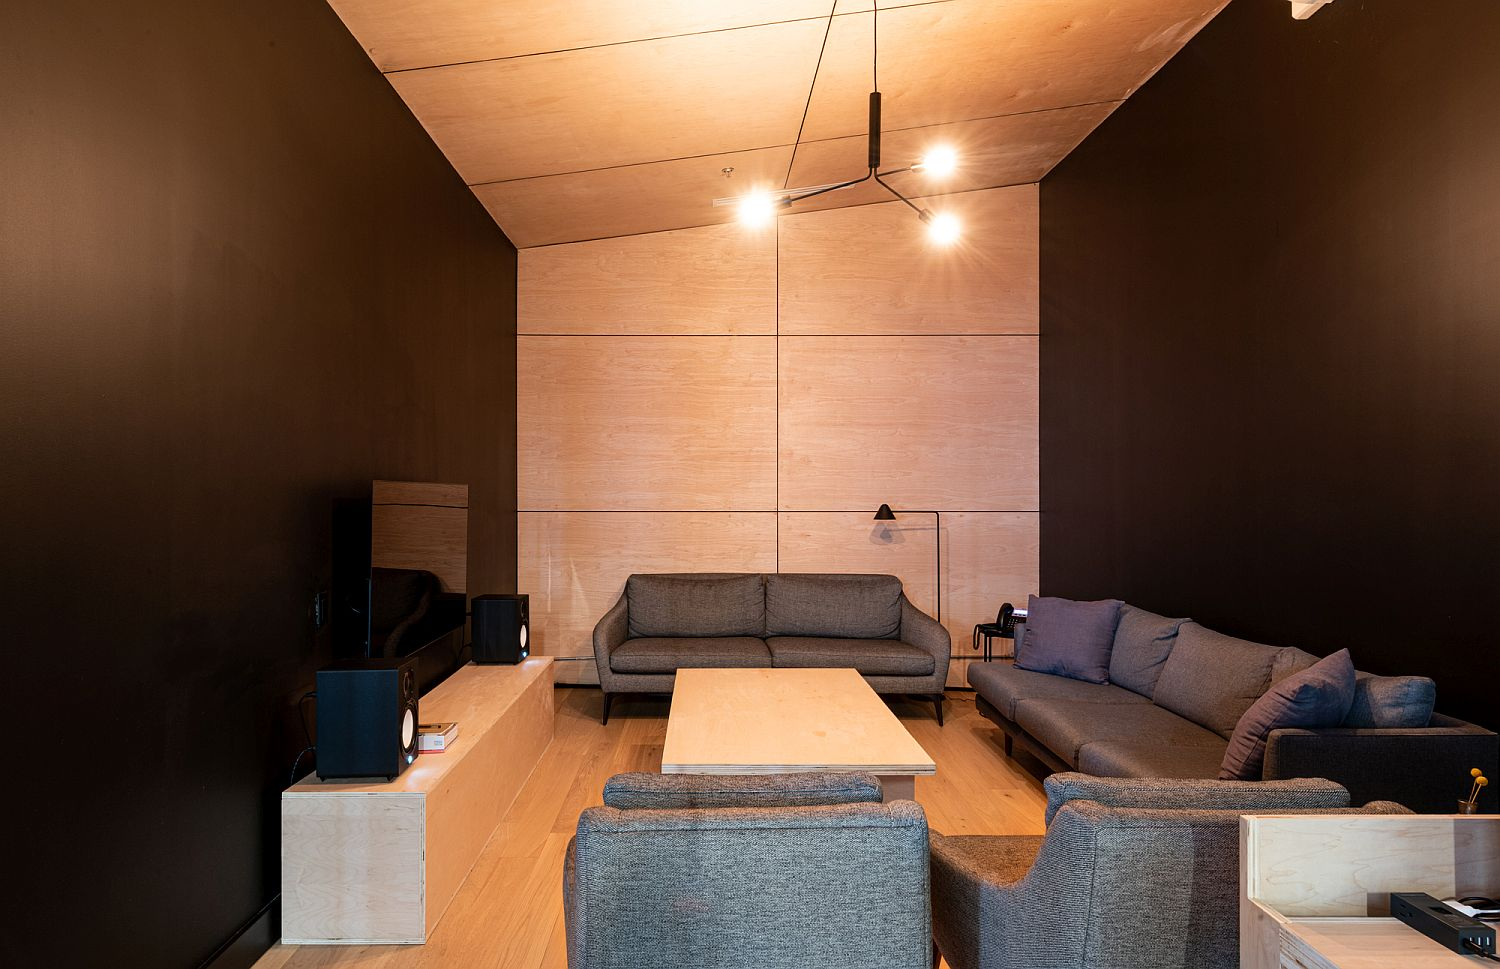 Wood and black spaces make a cool statement inside the office